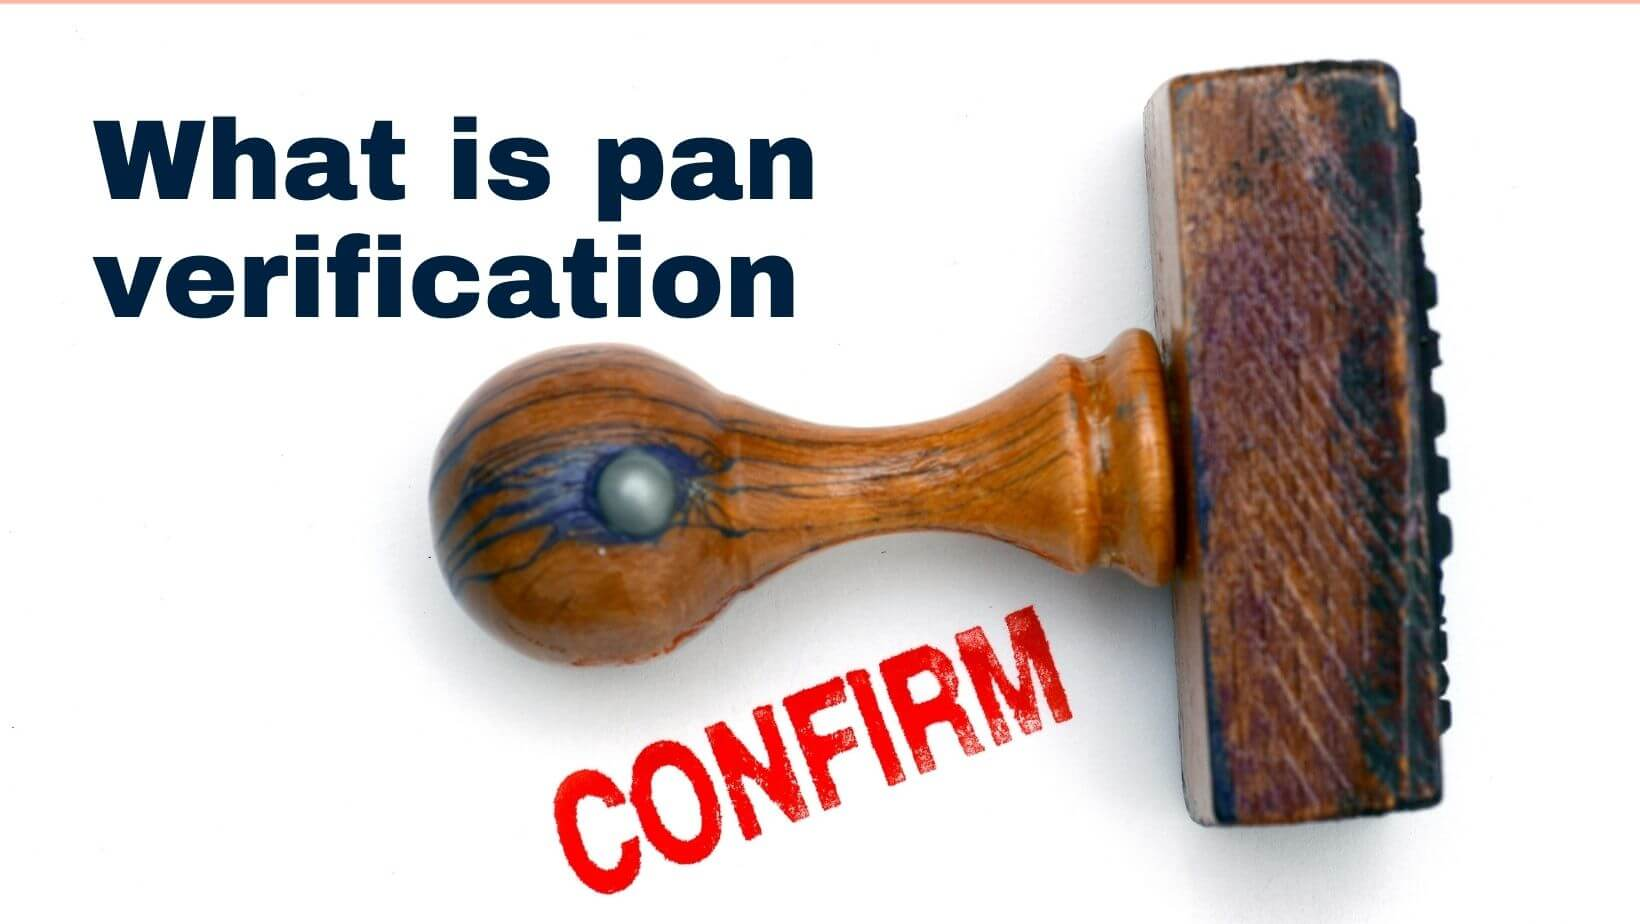 What is pan verification